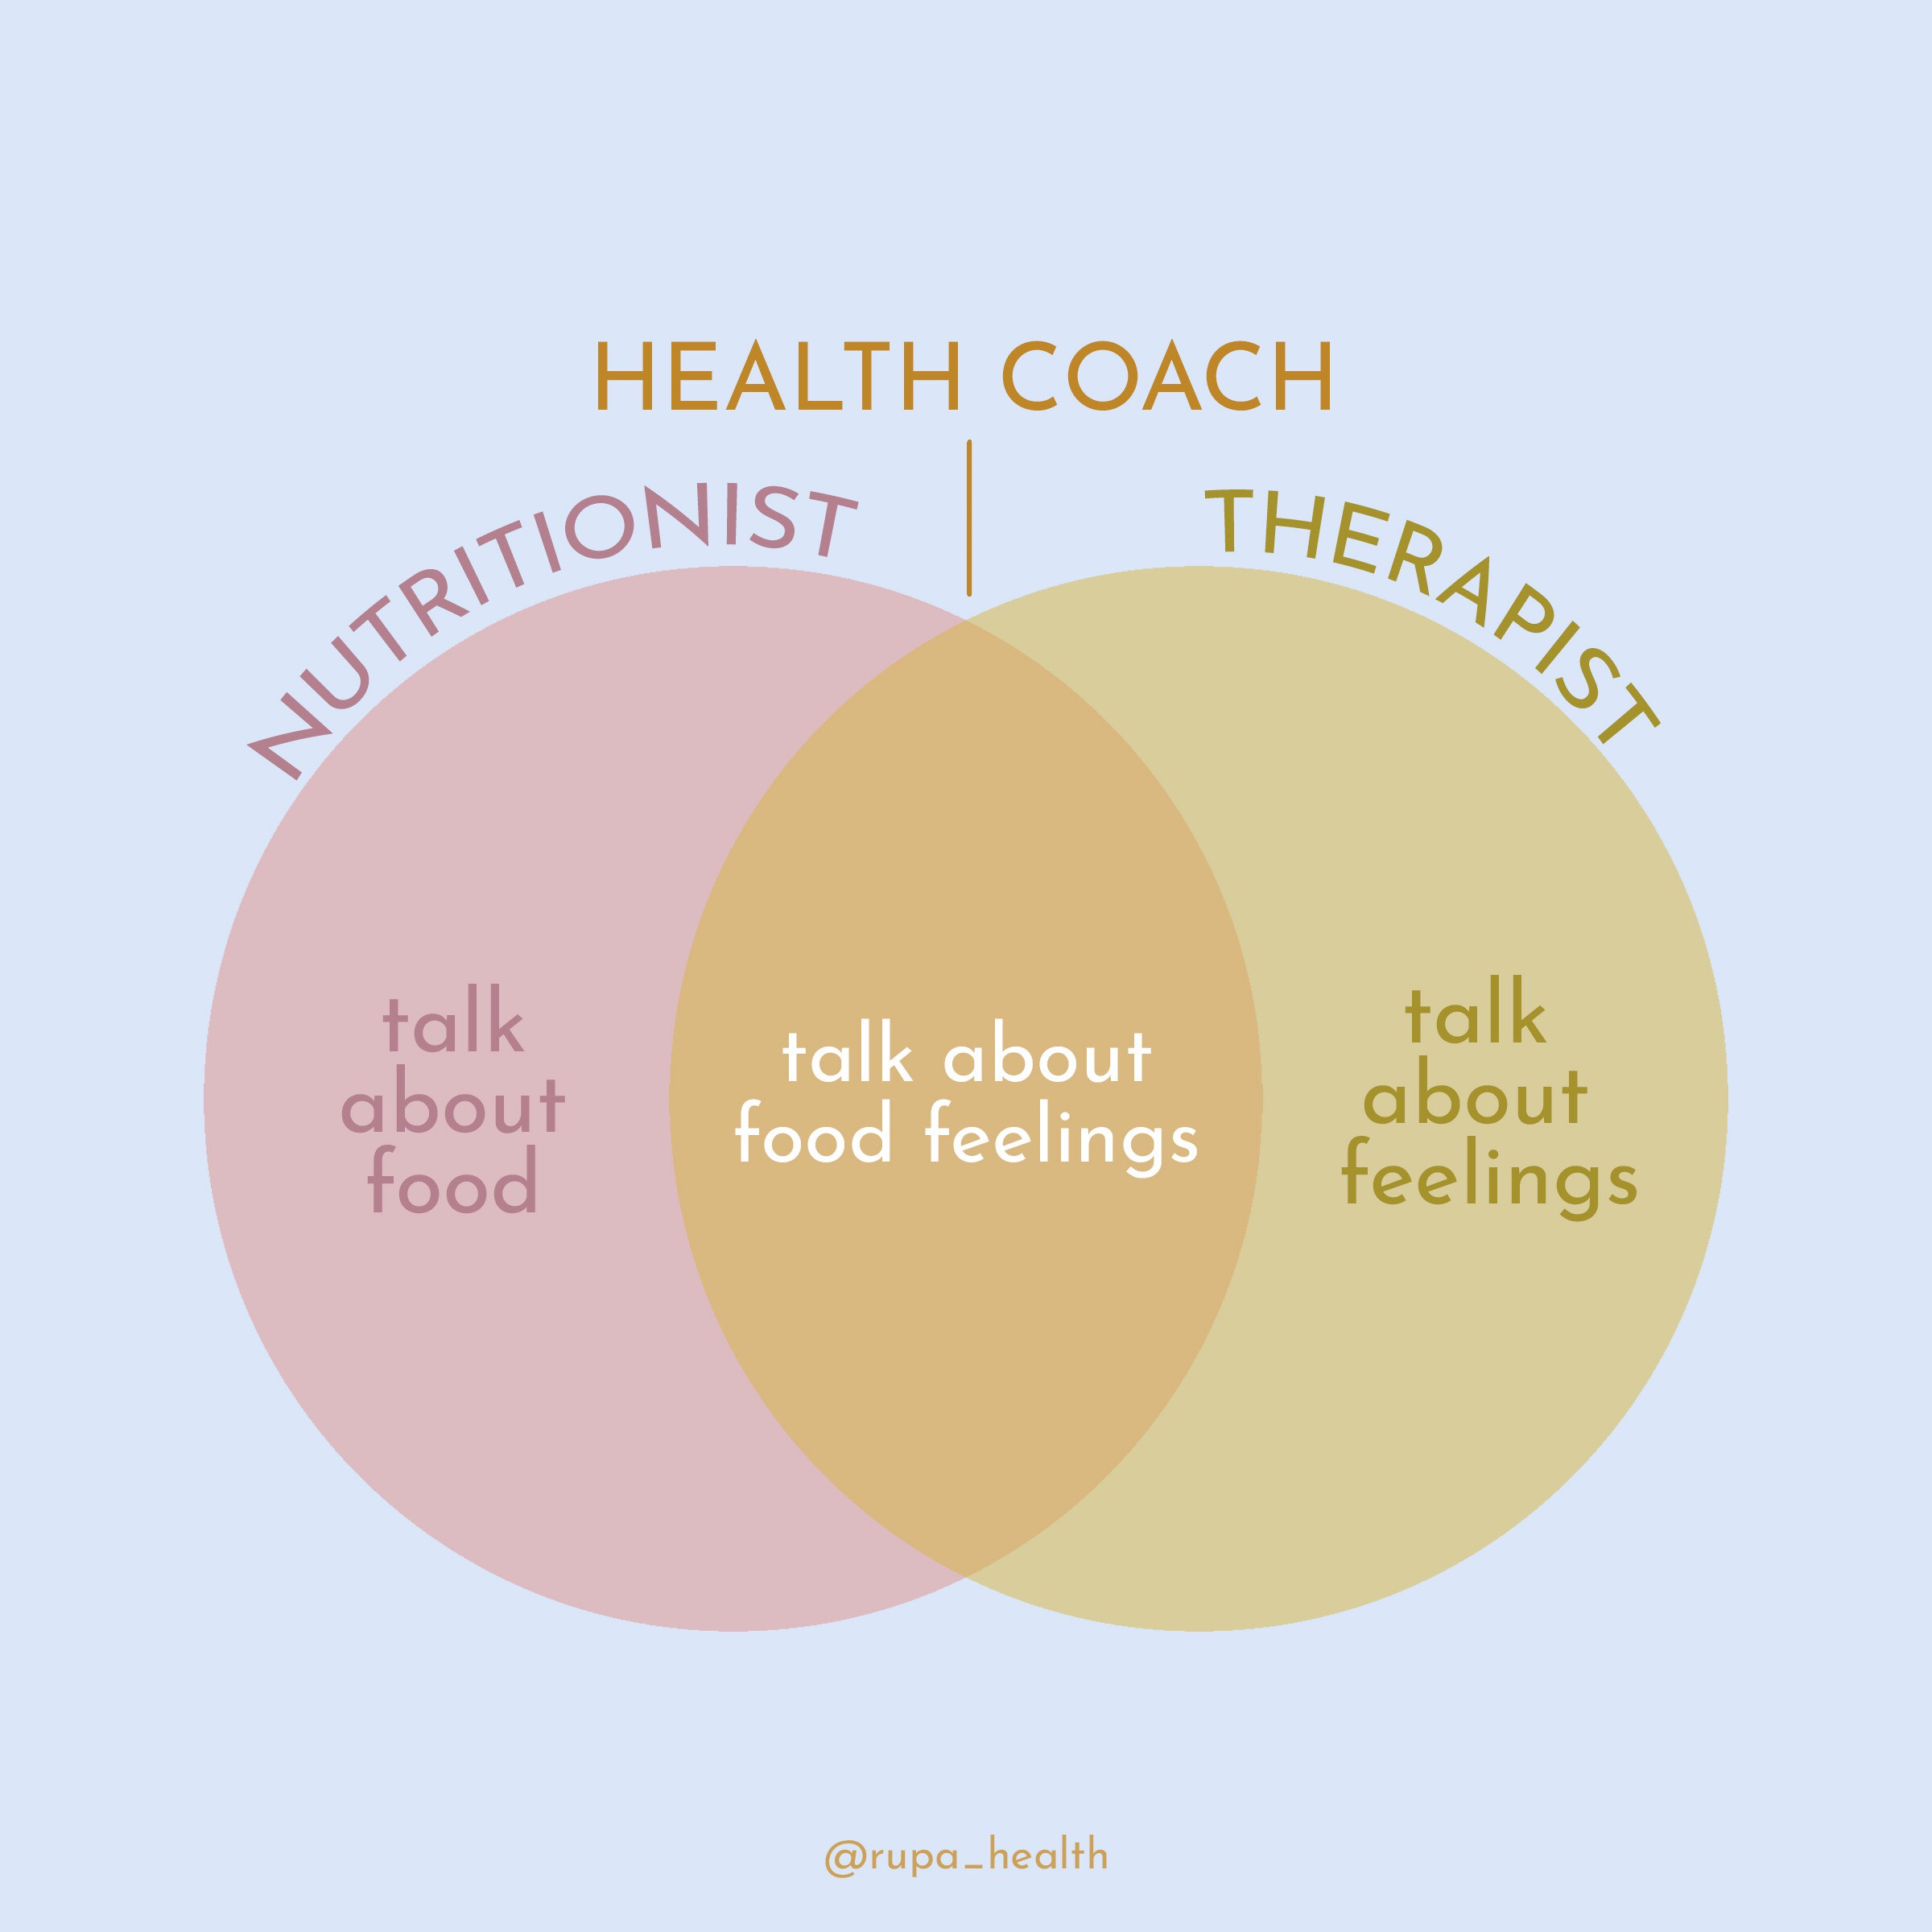 health_coach_role.jpeg